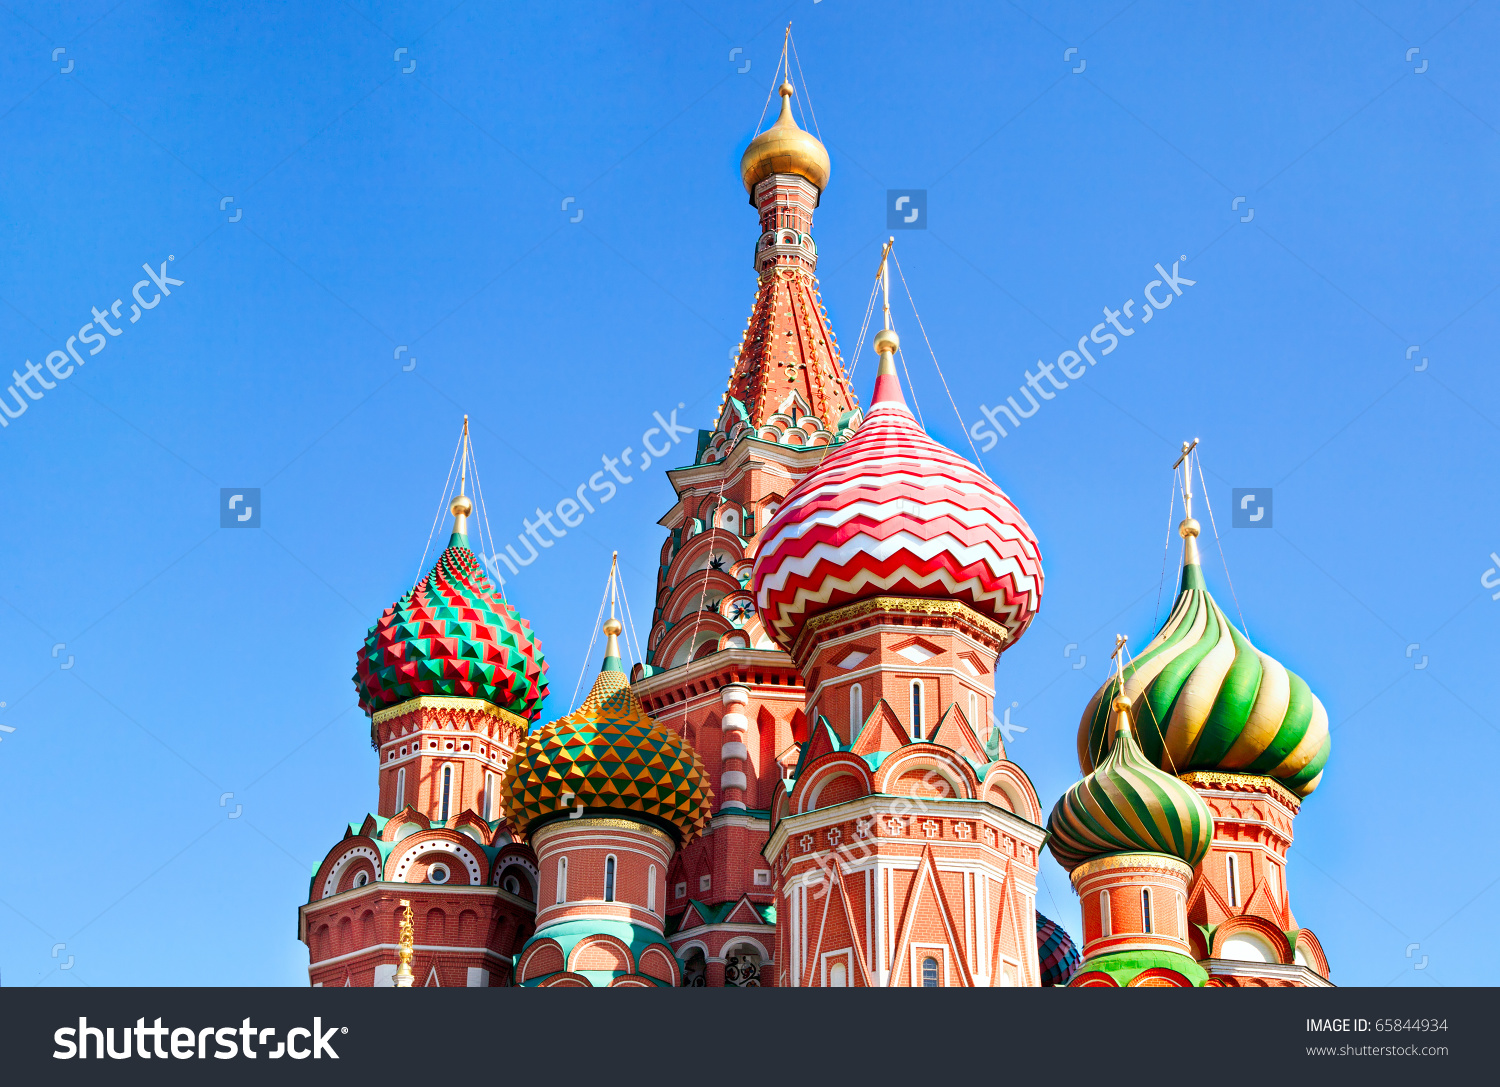 Cupola Of Saint Basil'S Cathedral On Red Square, Detailed View.